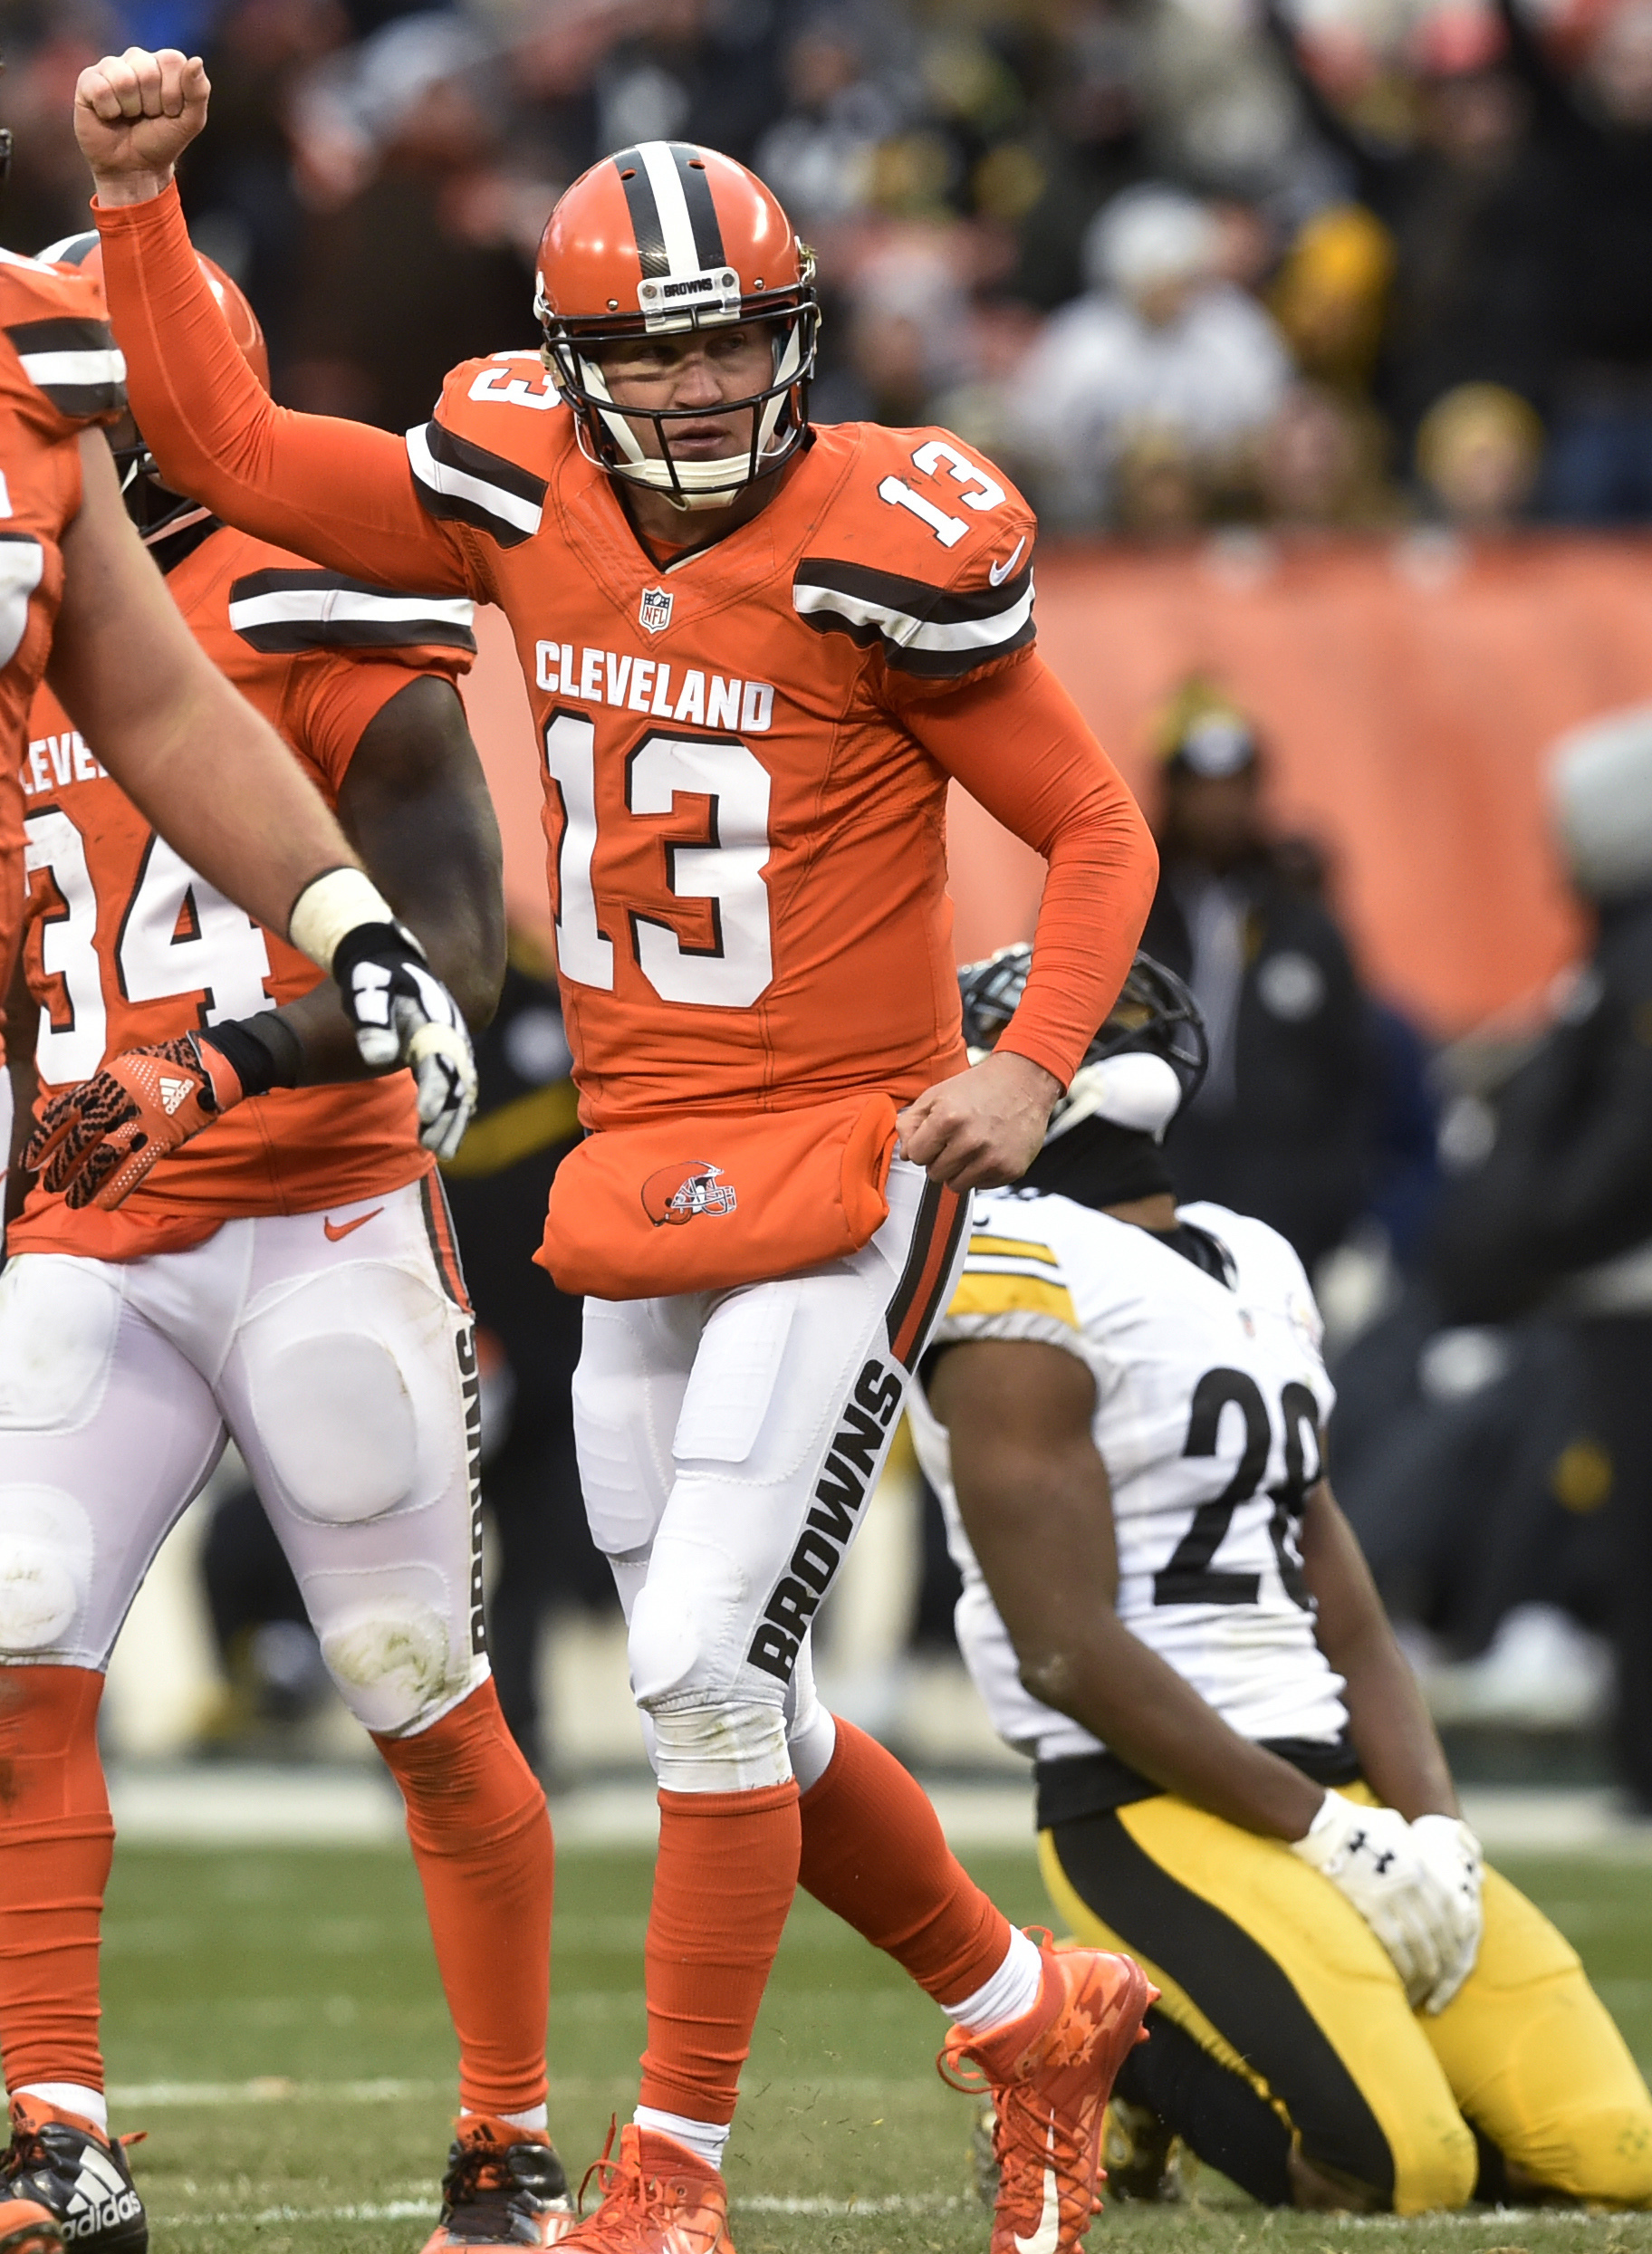 Cleveland Browns quarterback Josh McCown (13) celebrates a touchdown pass to tight end Gary Barnidge (82) during the second half of an NFL football game against the Pittsburgh Steelers in Cleveland, Sunday, Nov. 20, 2016. (AP Photo/David Richard)